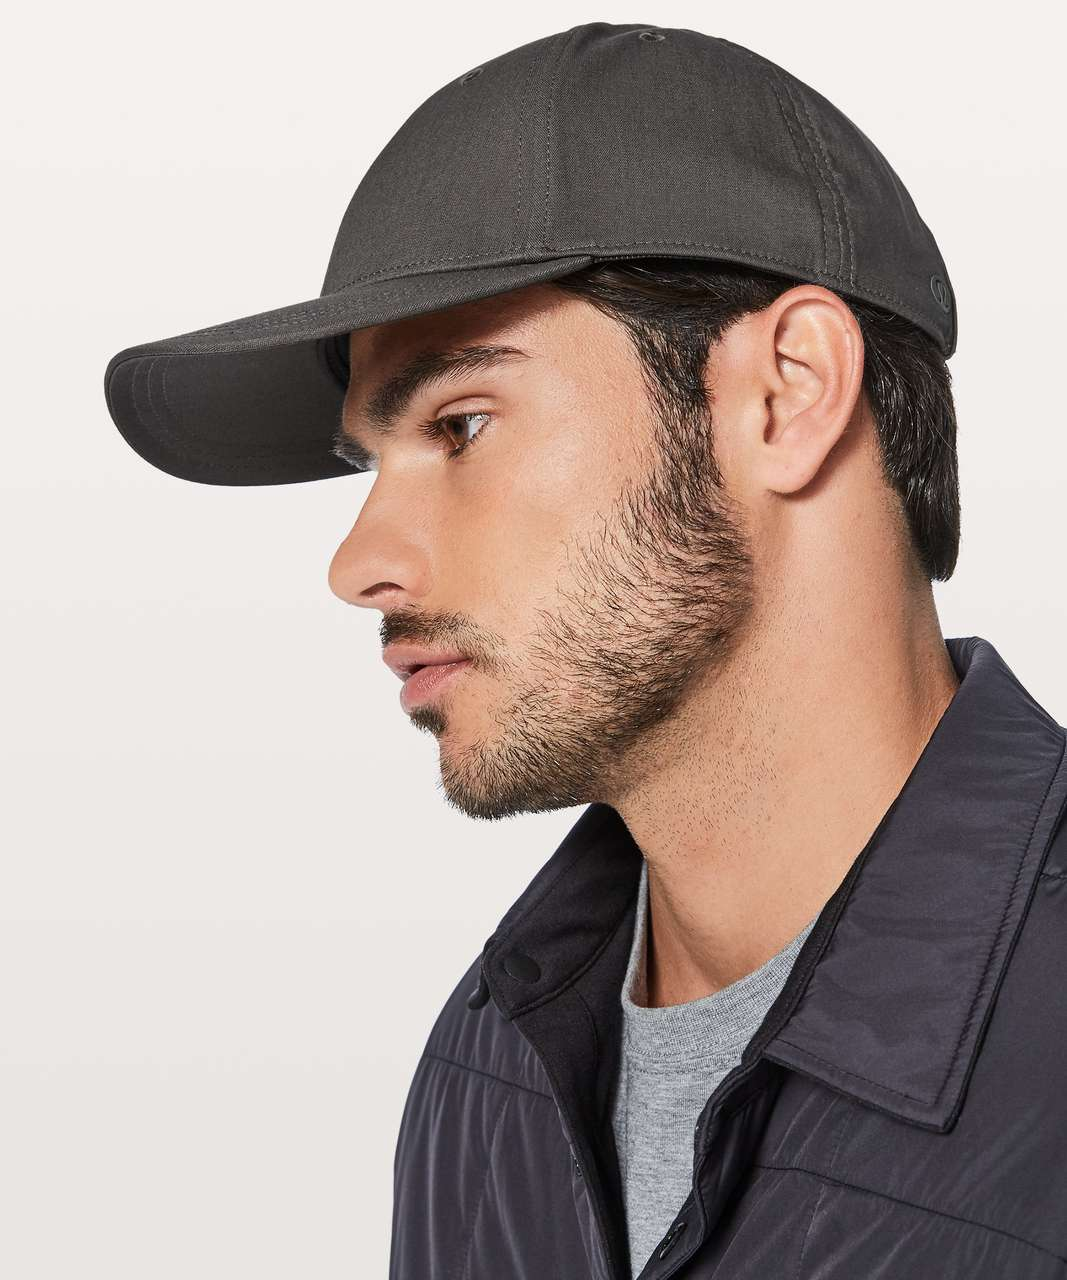 c9d7f44c Lululemon On The Fly Ball Cap - Stoney - lulu fanatics